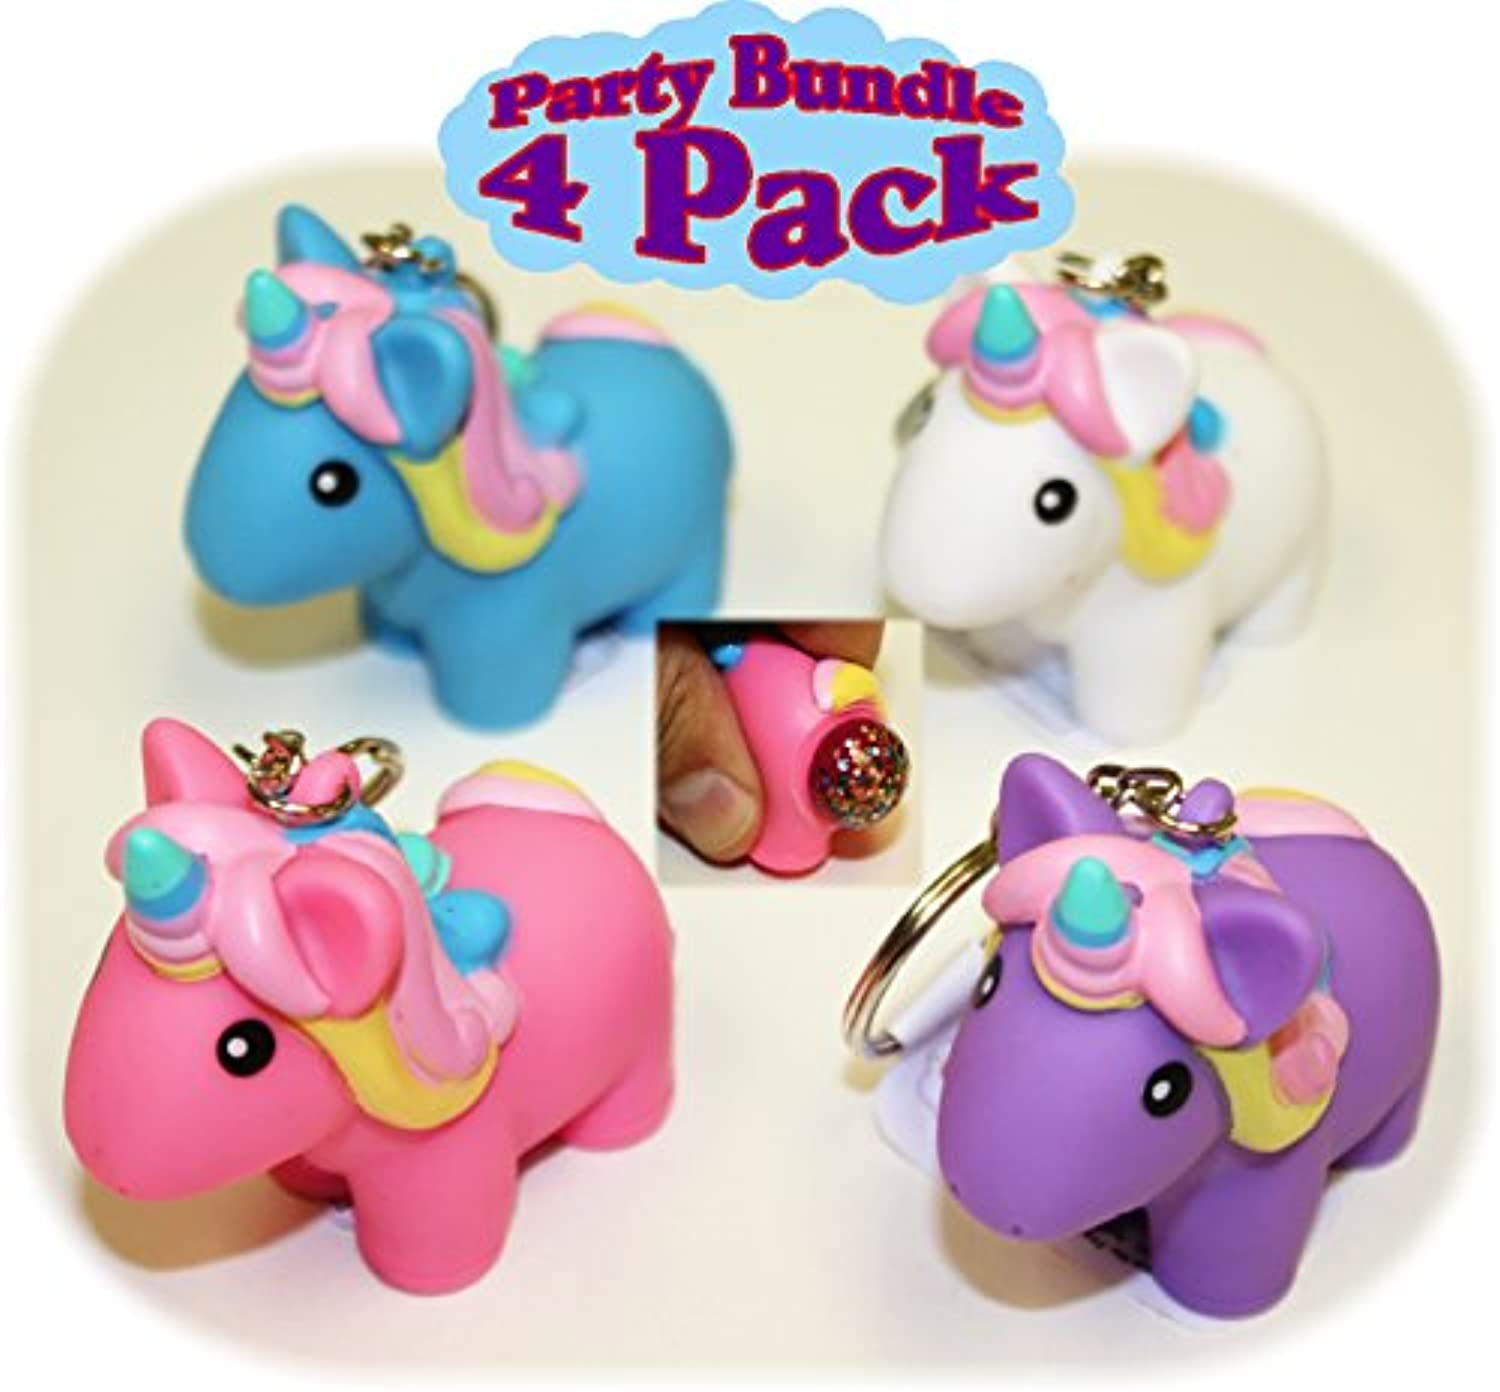 Animolds PooPoo Unicorn (Glitter Pooping Unicorns) Keychains Pink, Blue, Purple & White Complete Gift Set Party Bundle - 4 Pack